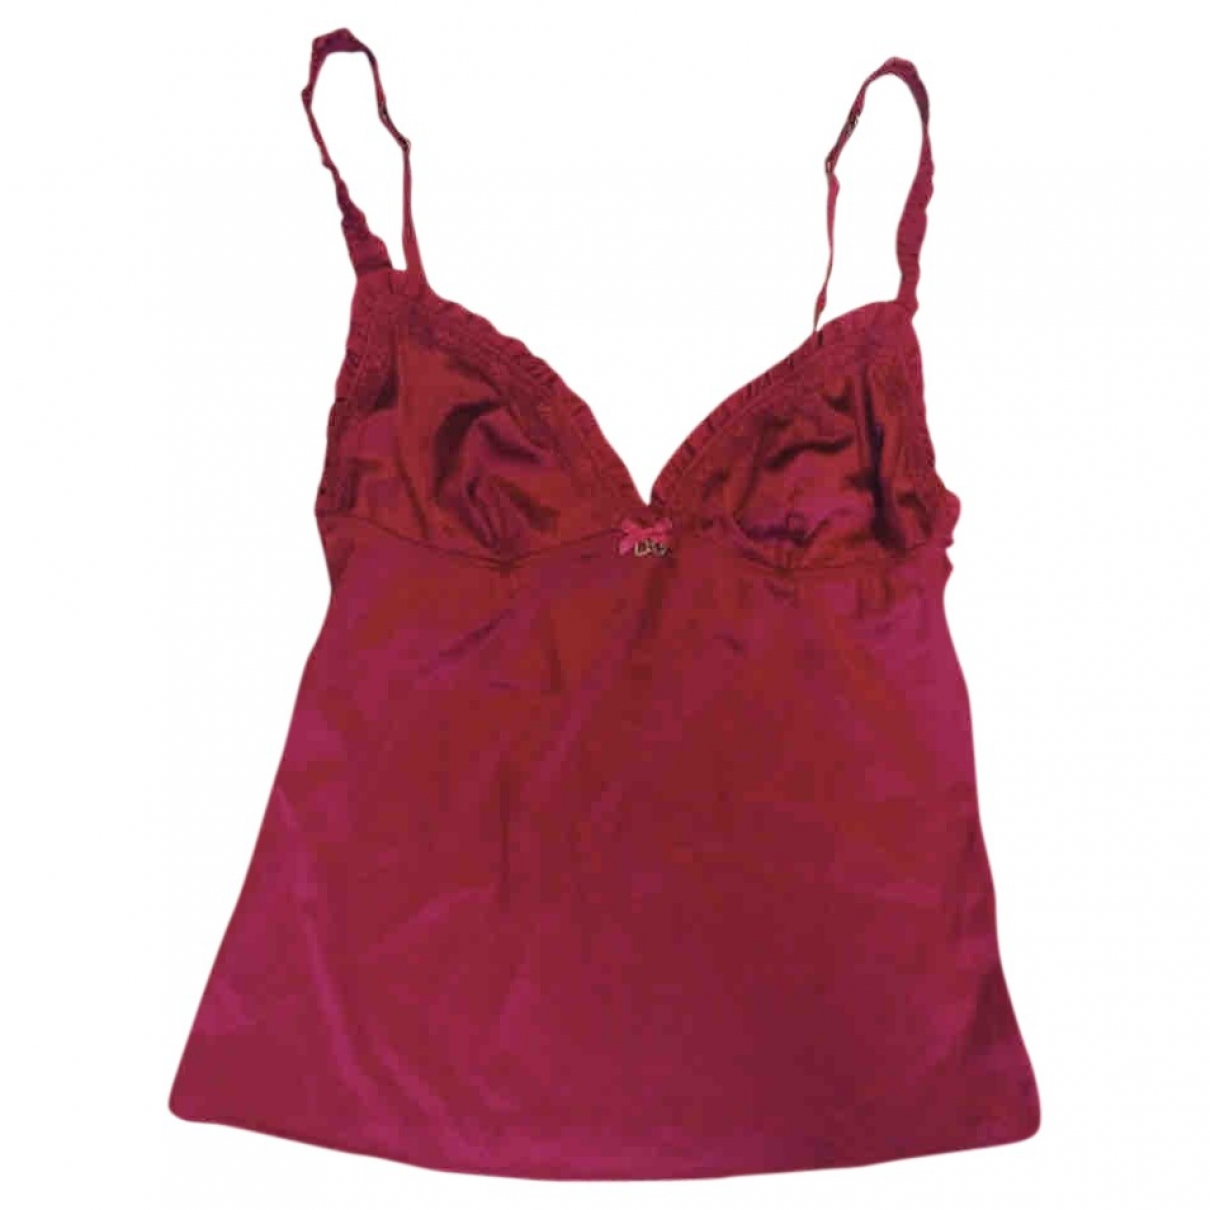 D&g \N Top in  Rot Polyester